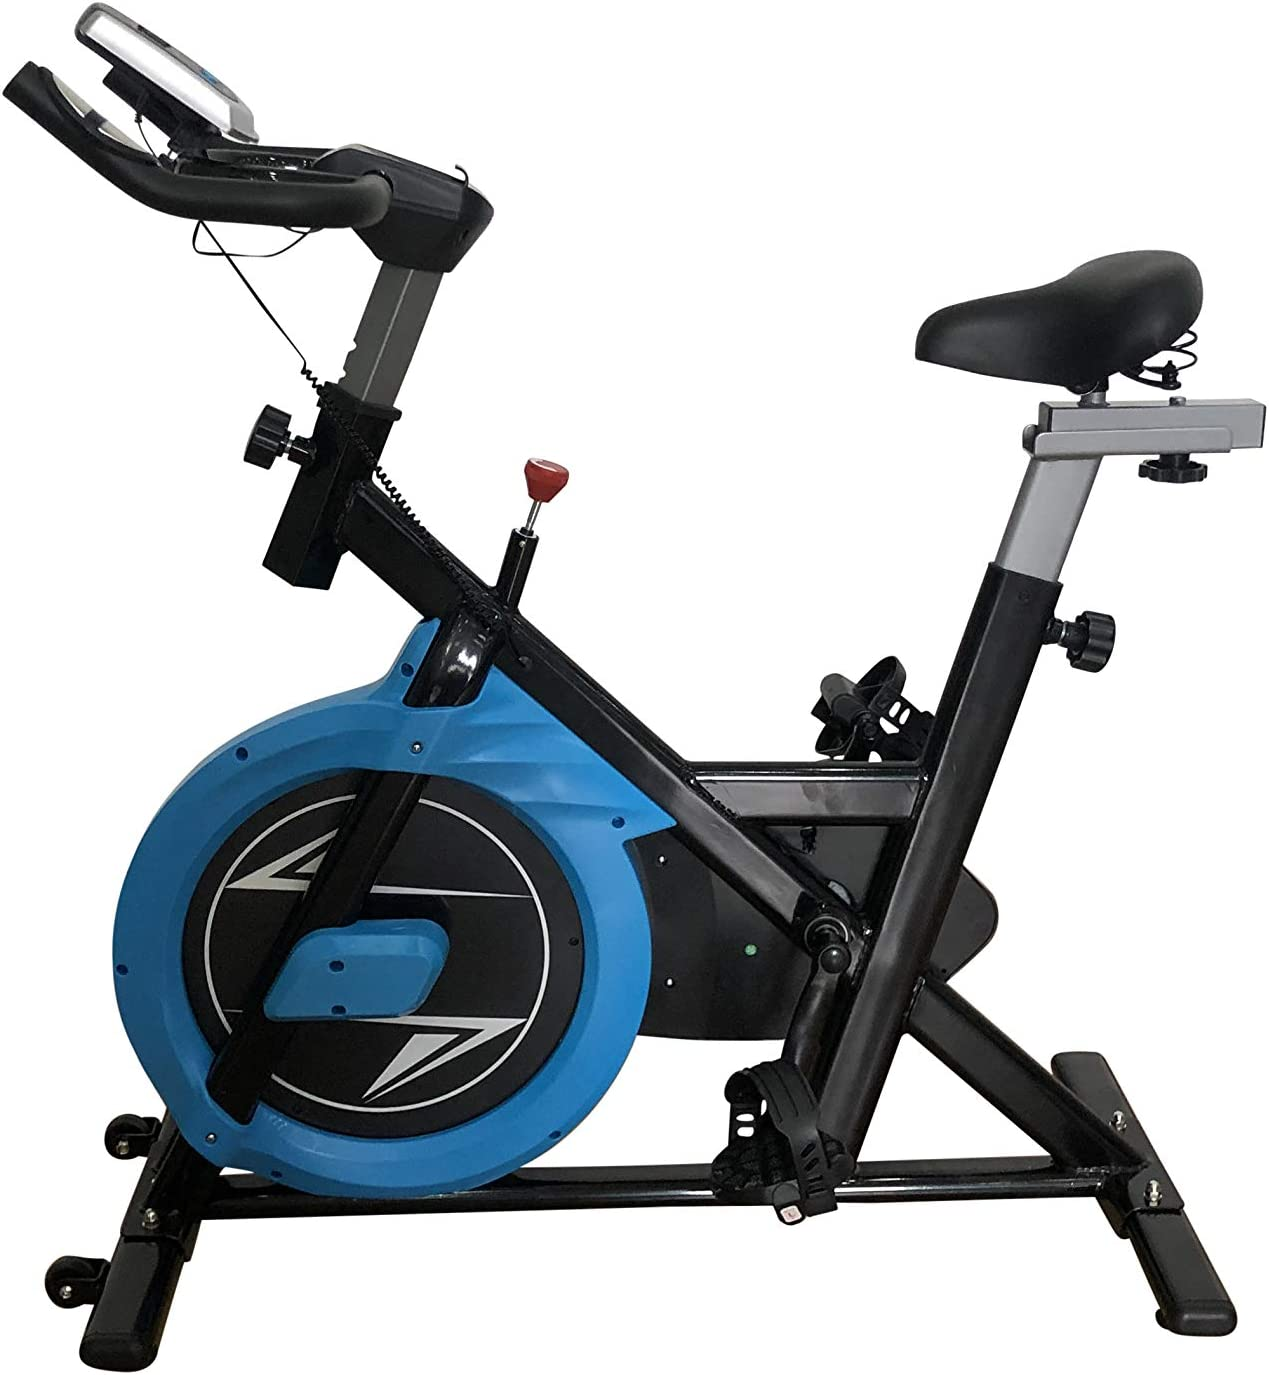 OLYMPIC Indoor Cycling - Cinta de Correr para Fitness, Color Amarillo: Amazon.es: Deportes y aire libre